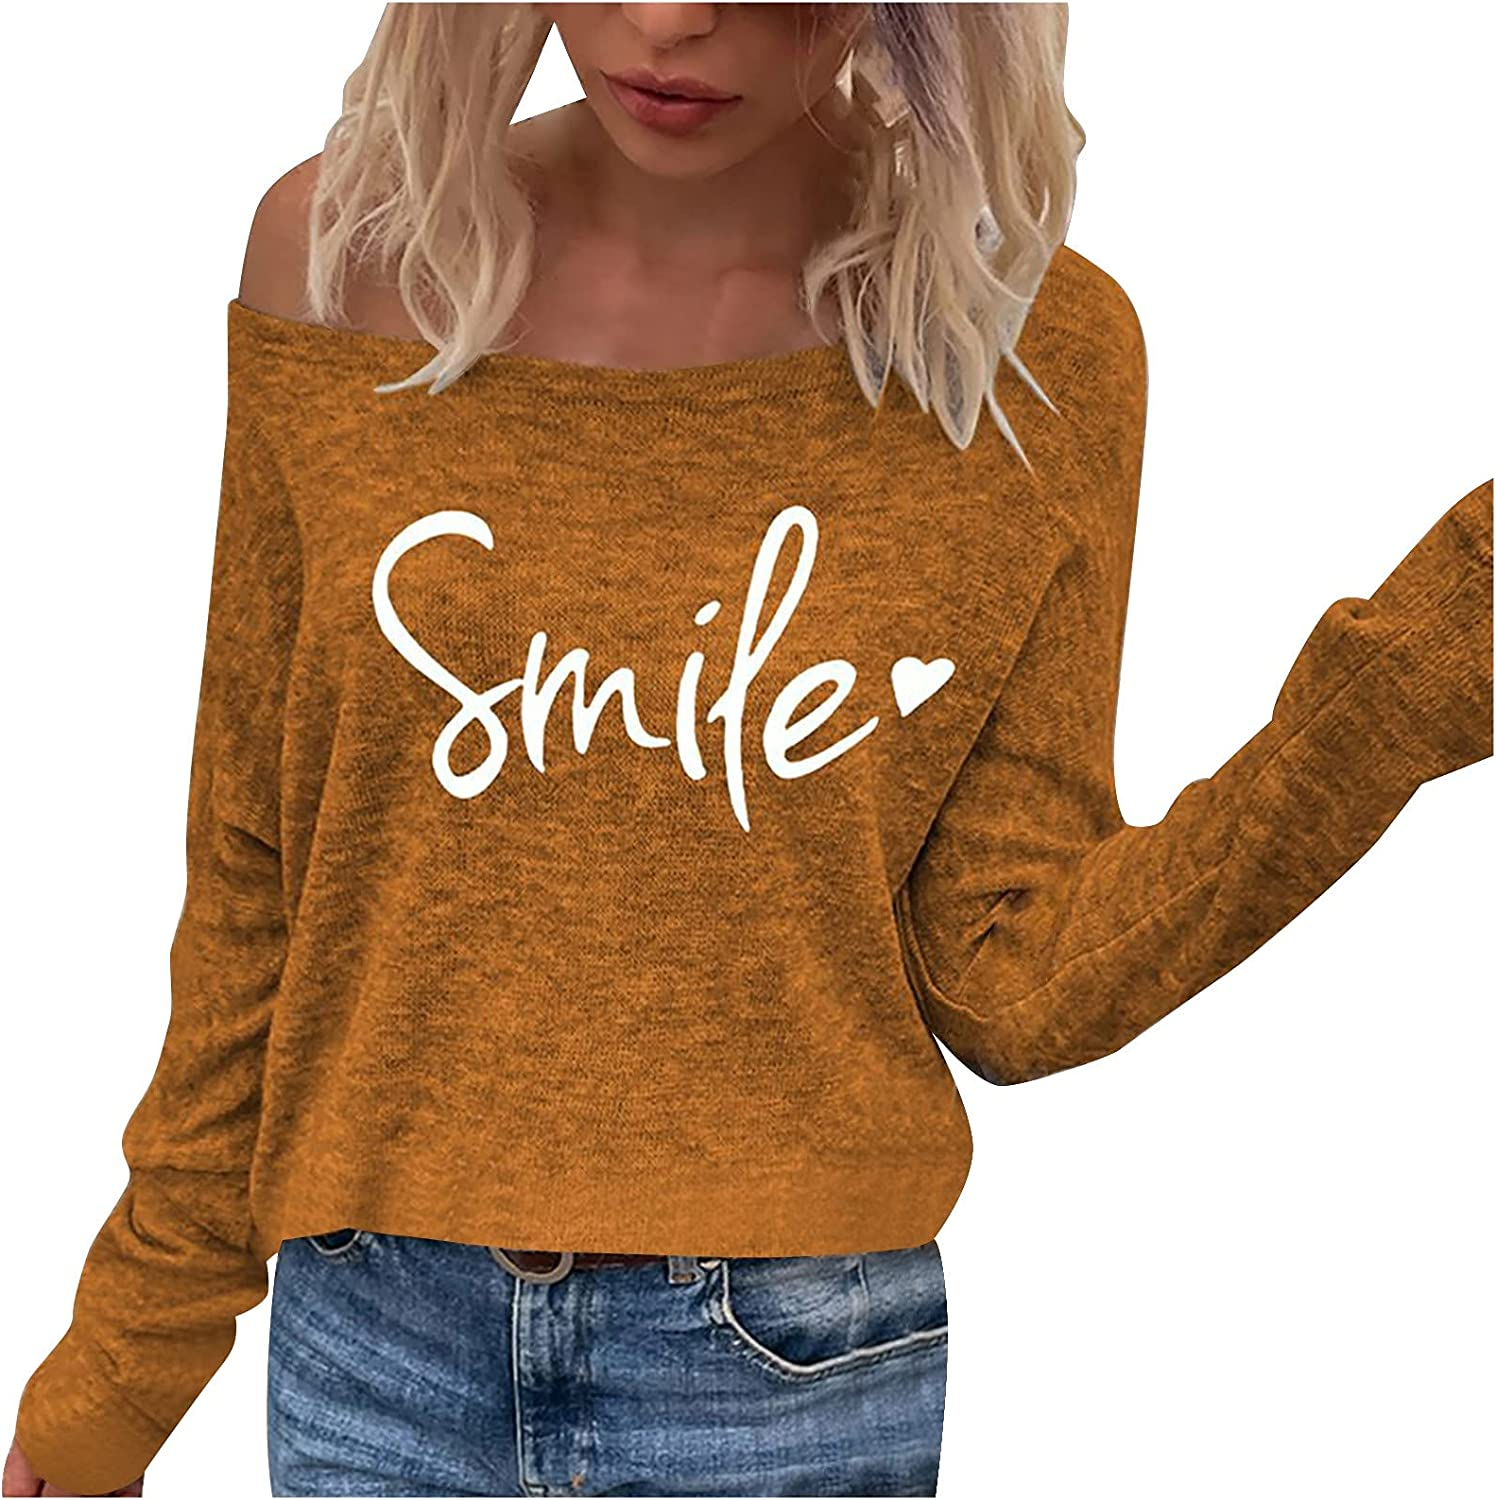 YALFJV Cold Shoulder Tops for Women Long Sleeve Bowl Neck Tunics Graphic Tee Shirt Casual Tunics Pullover Sweatshirt Blouses